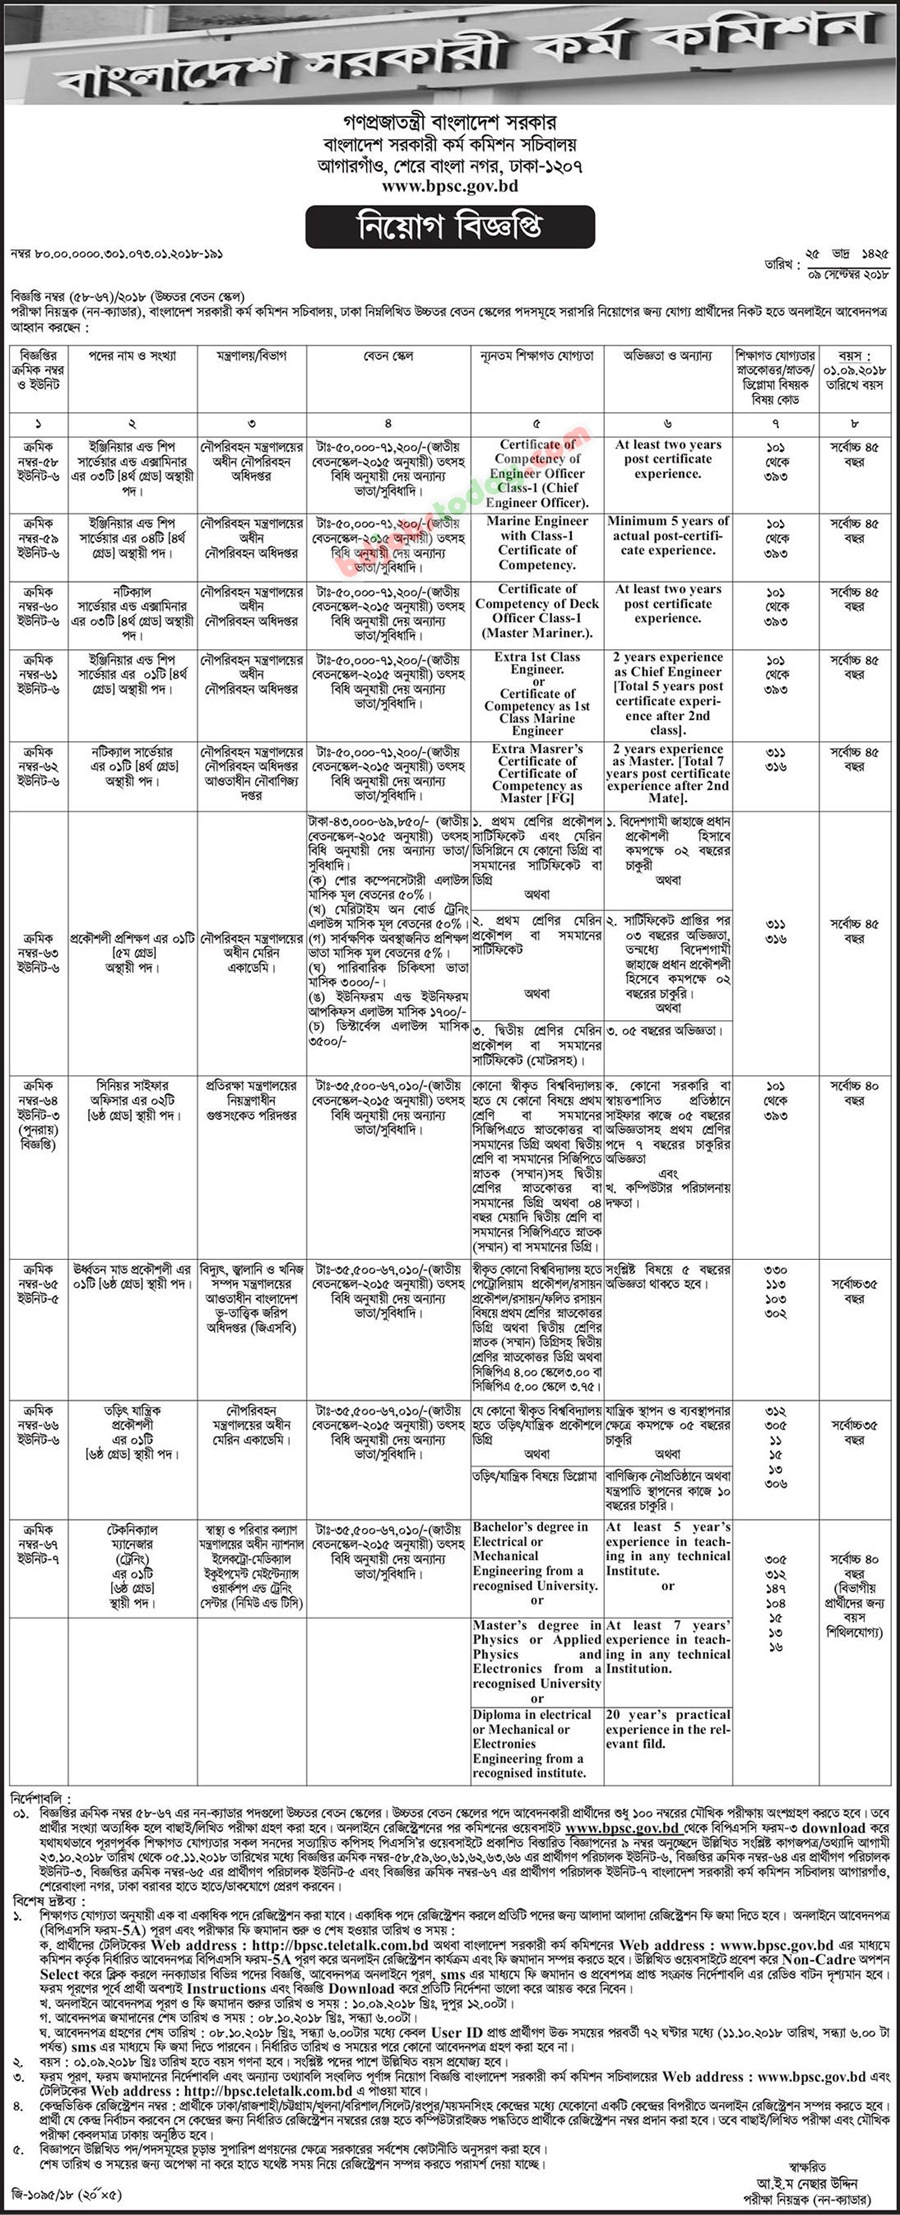 Bangladesh Public Service Commission -BPSC jobs